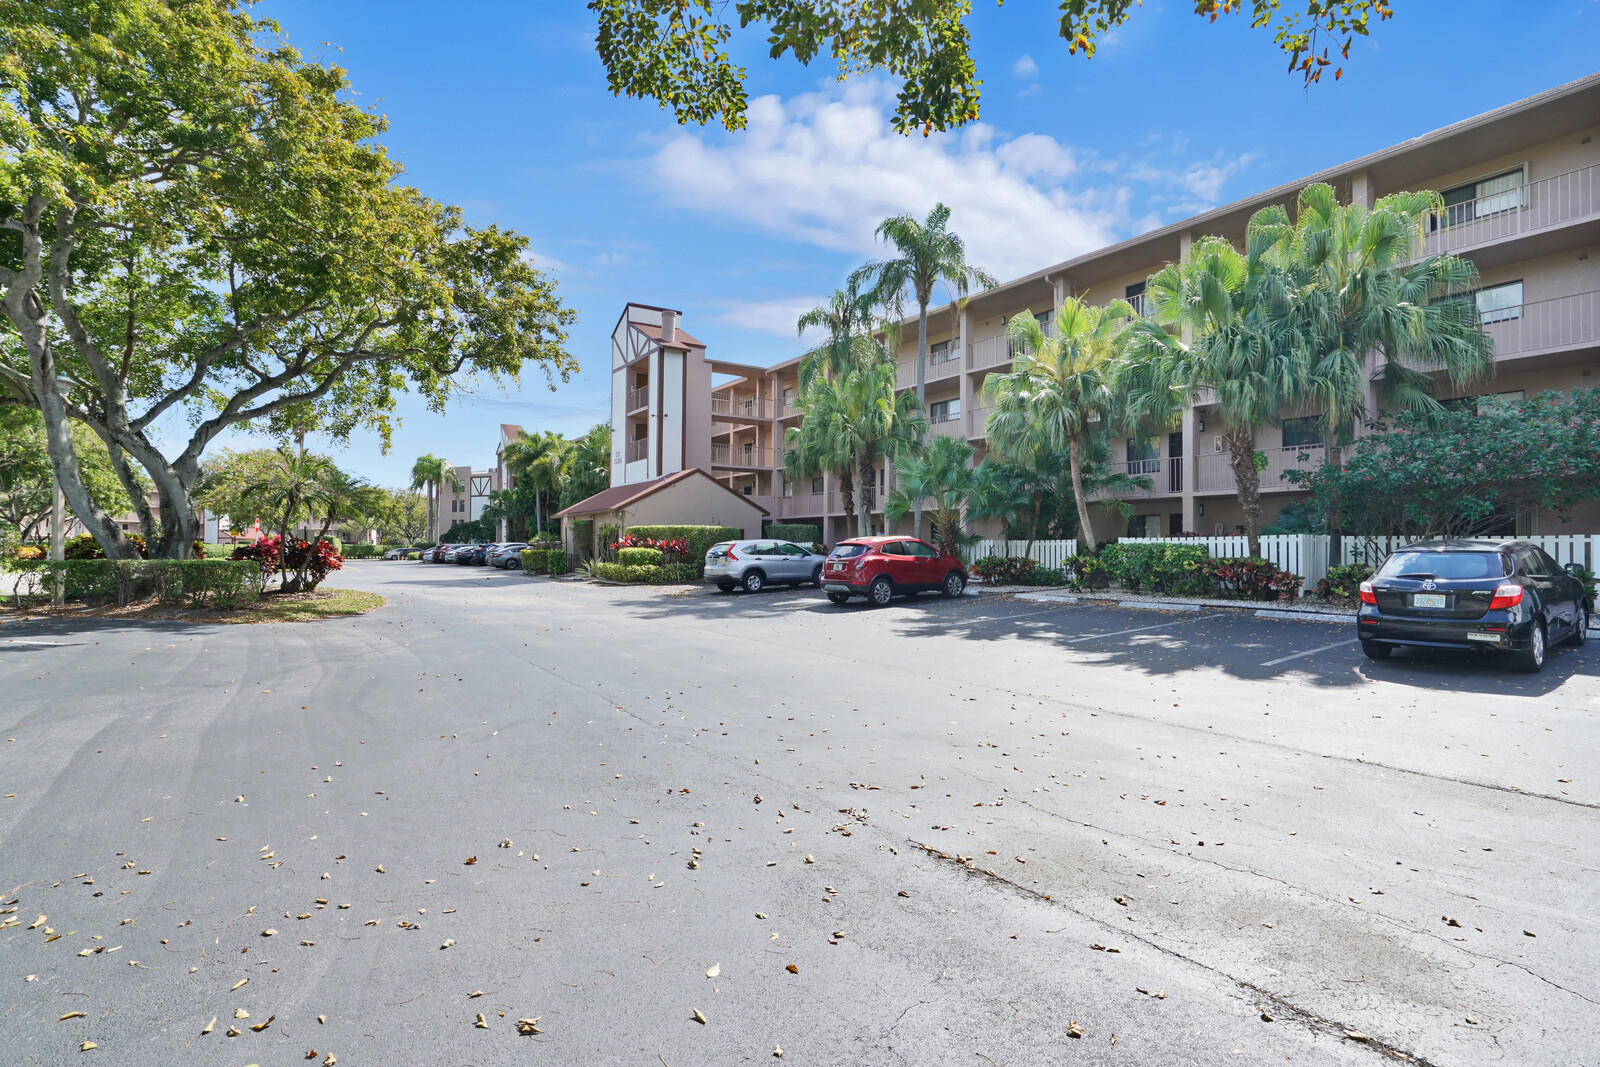 7300  Amberly Lane 310 For Sale 10703808, FL